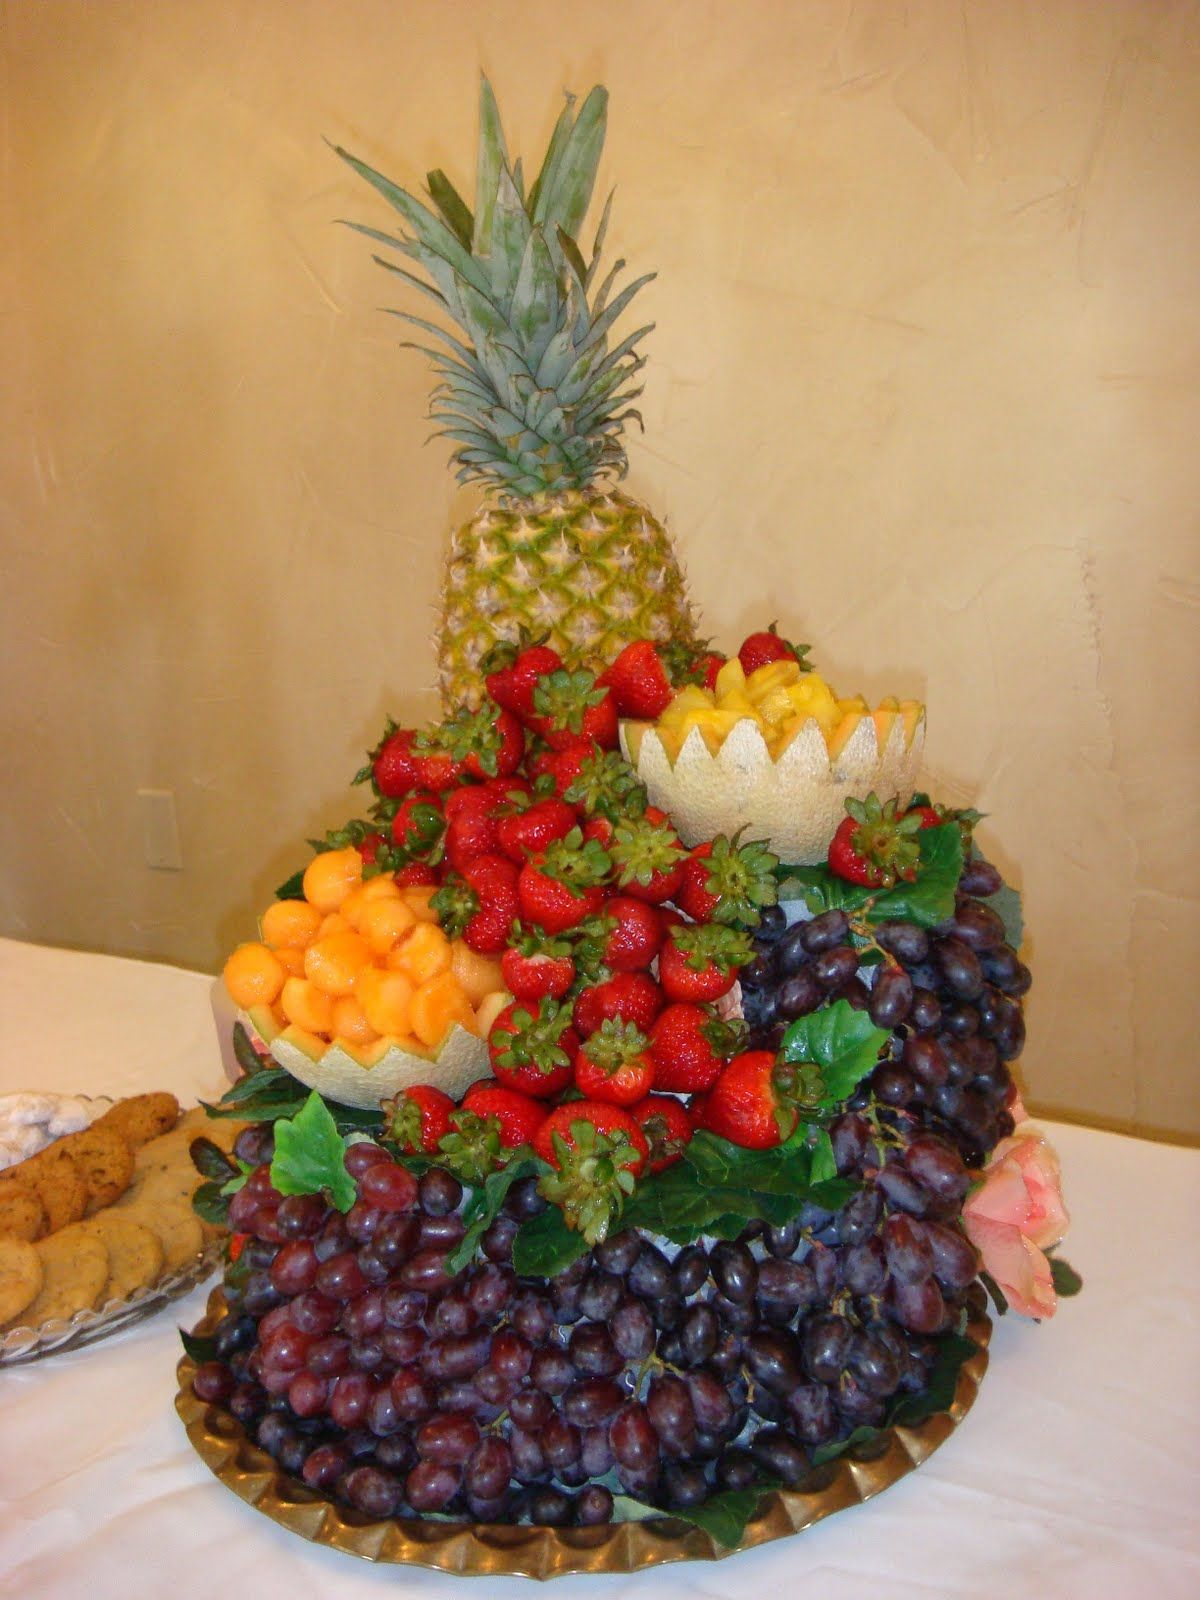 Designer Fruit Basket Decorative Arrangement Fruit Photos Bing Images Fruit